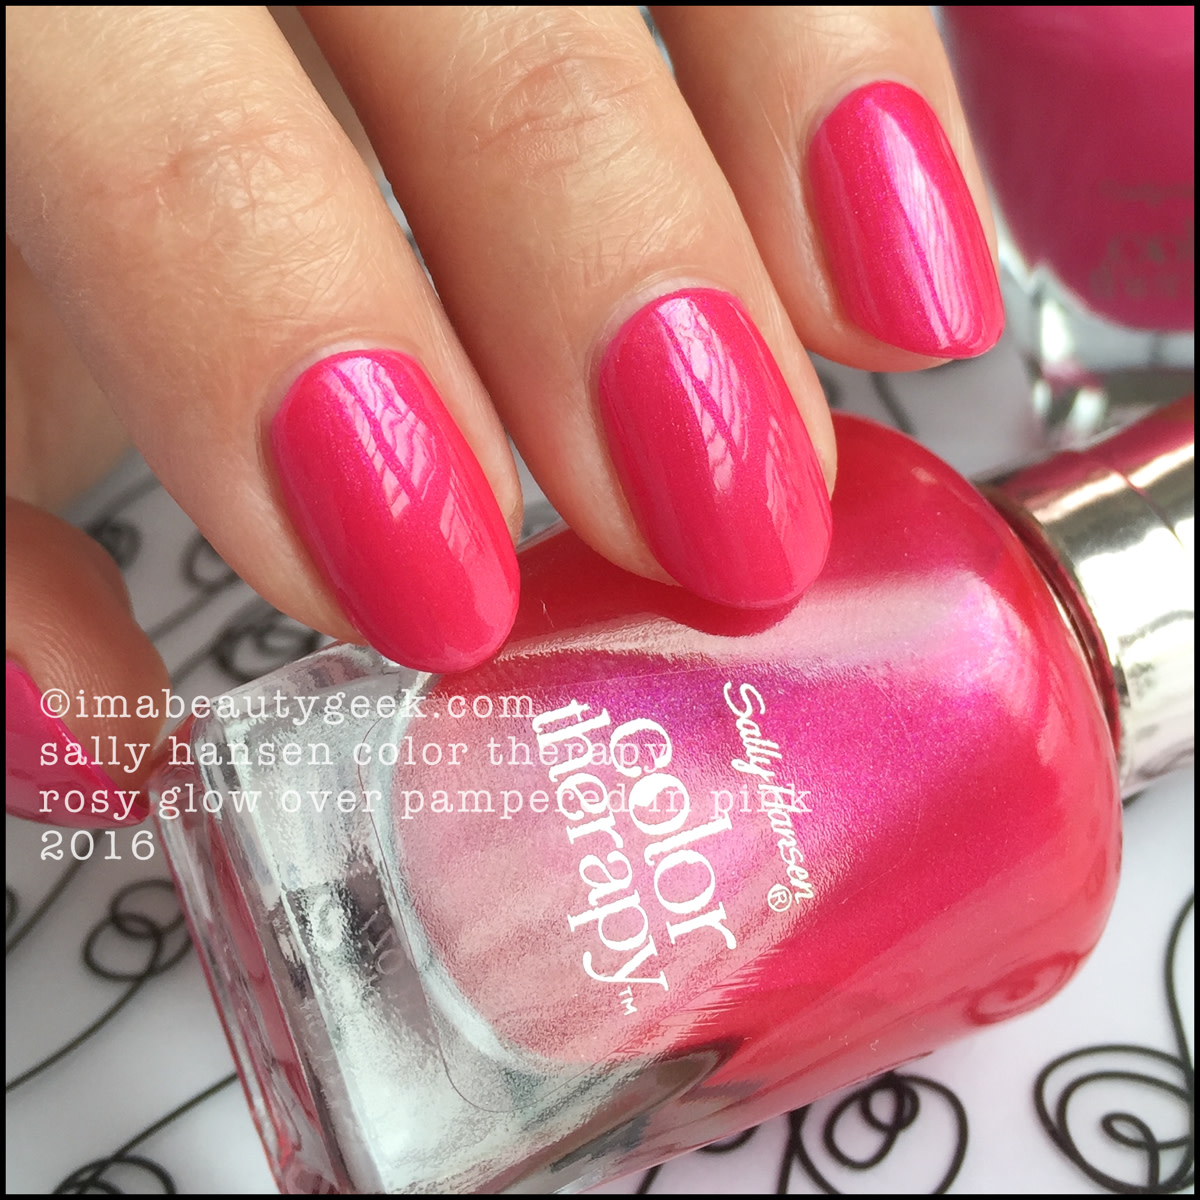 Sally Hansen Color Therapy Rosy Glow over Pampered in Pink_Sally Hansen Color Therapy Swatches Review